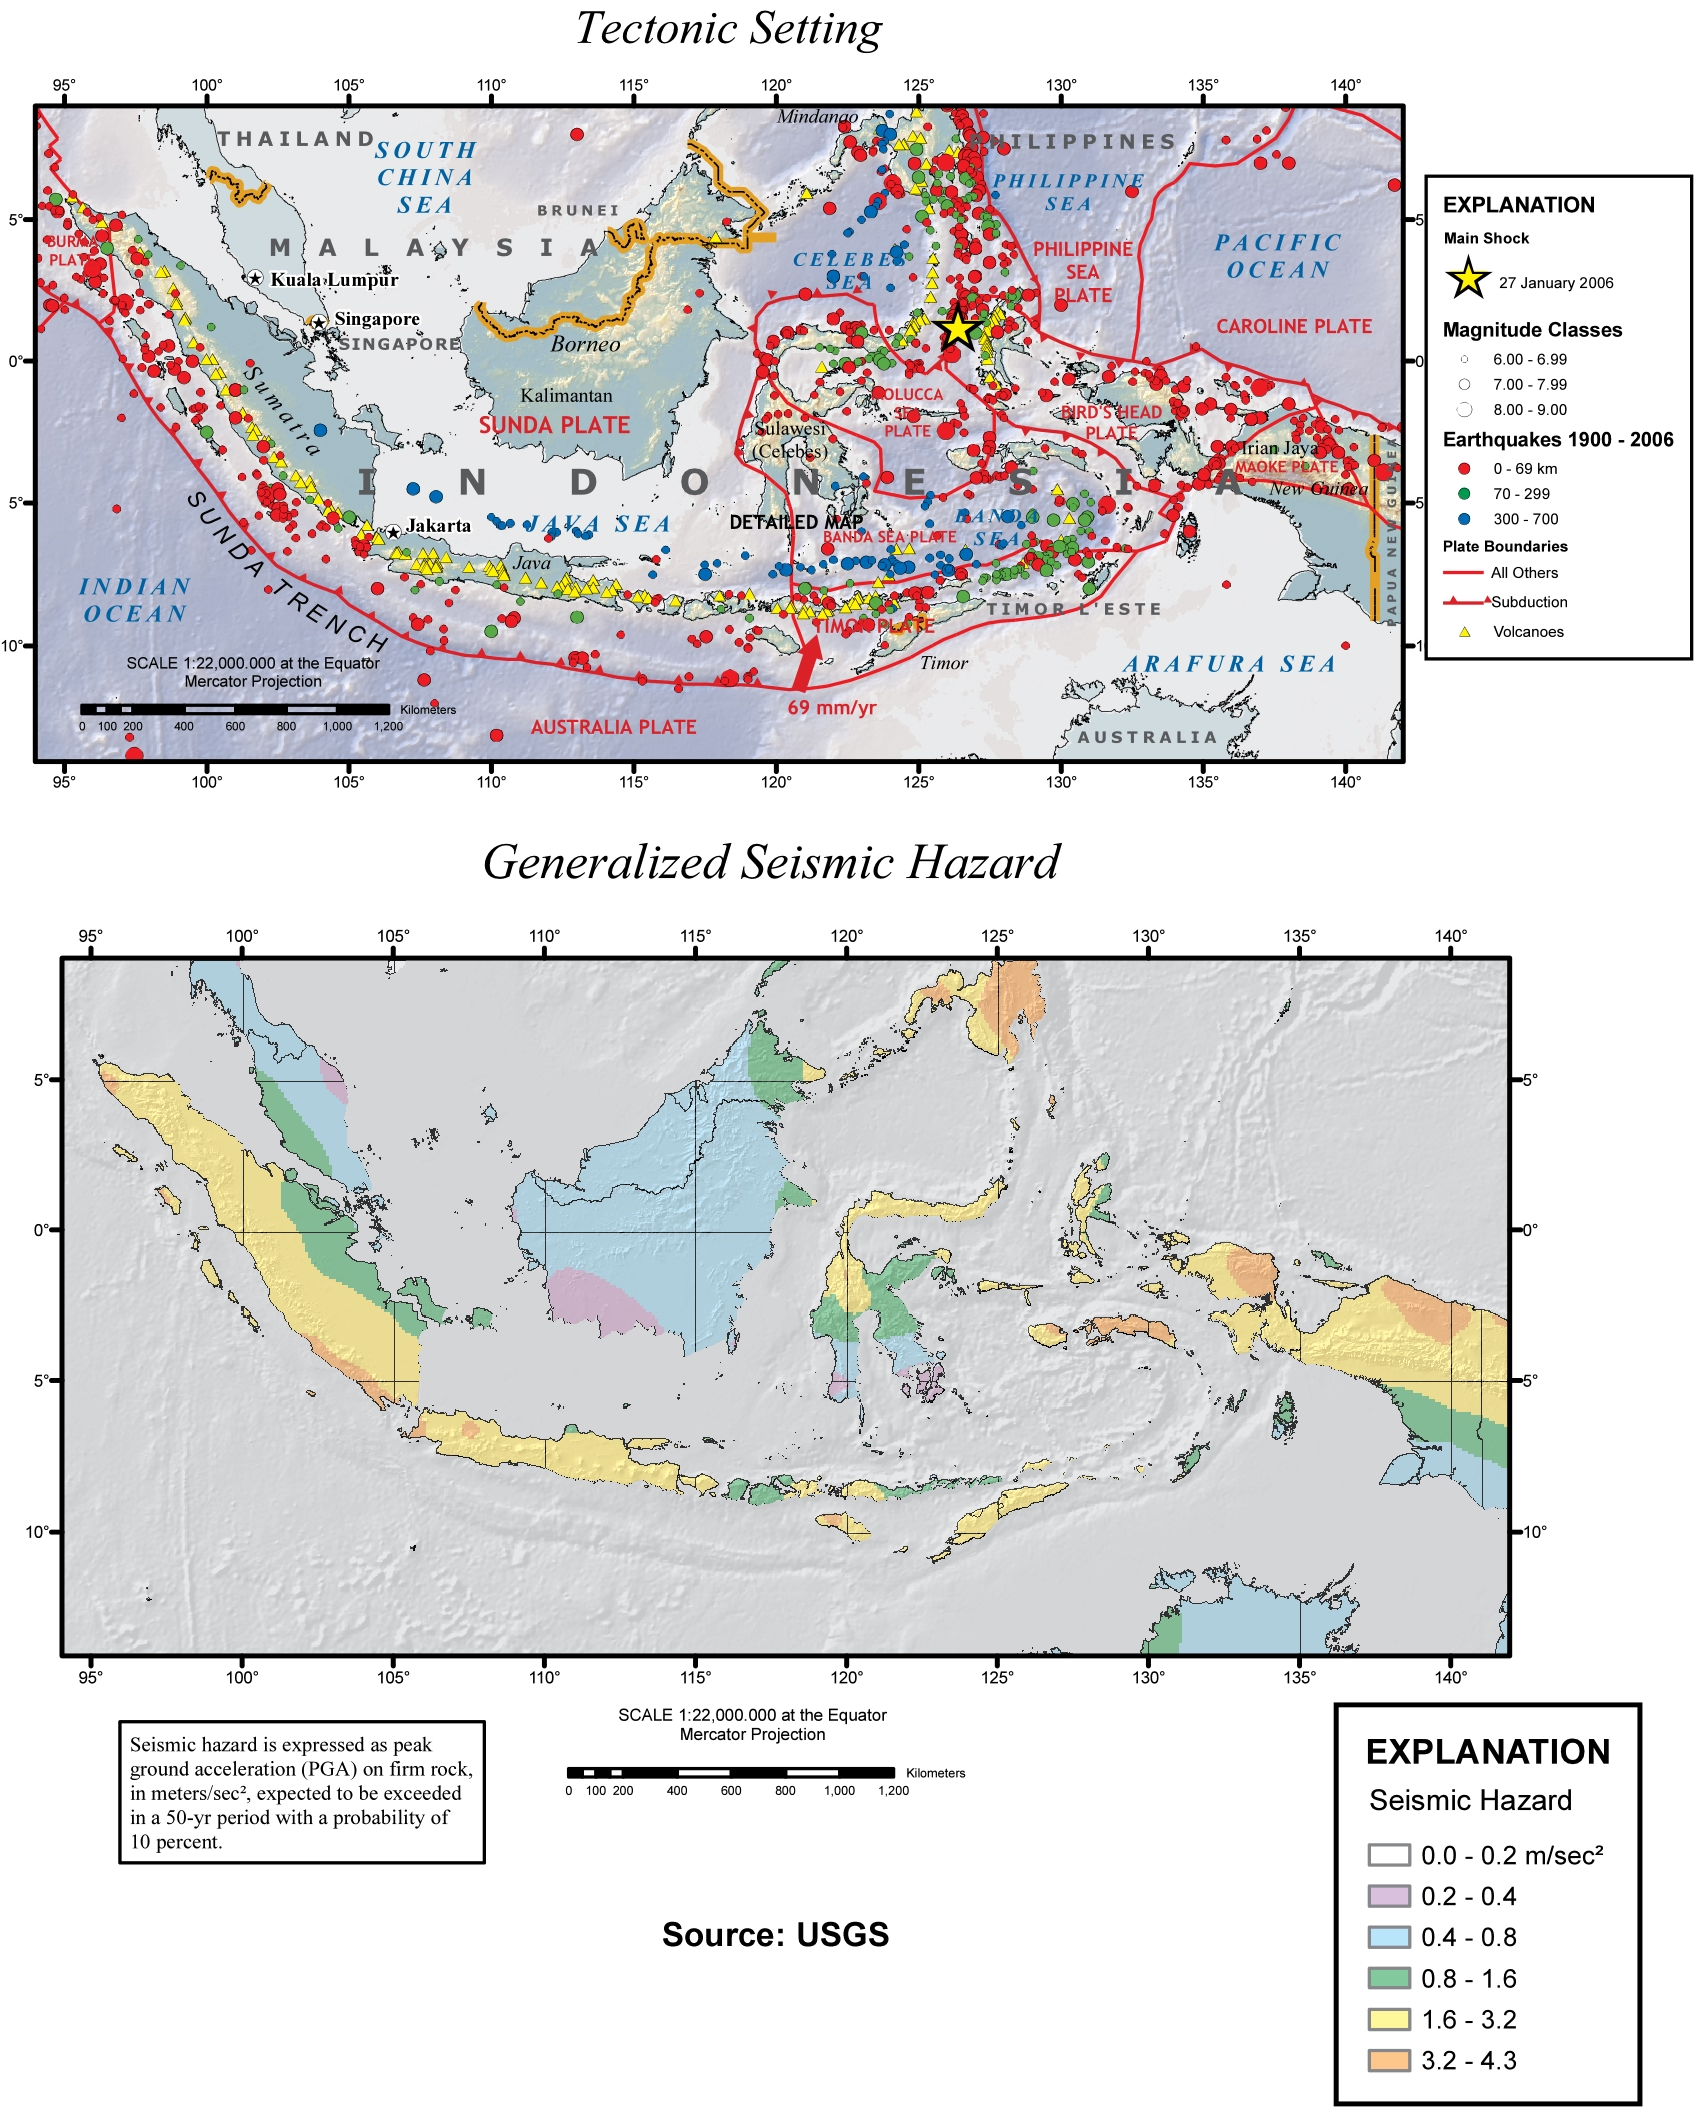 Earthquake geology of southeast asia scientific malaysian figure 1 the tectonic setting upper panel and generalized seismic hazard lower panel of malaysia and its surrounding areas gumiabroncs Images